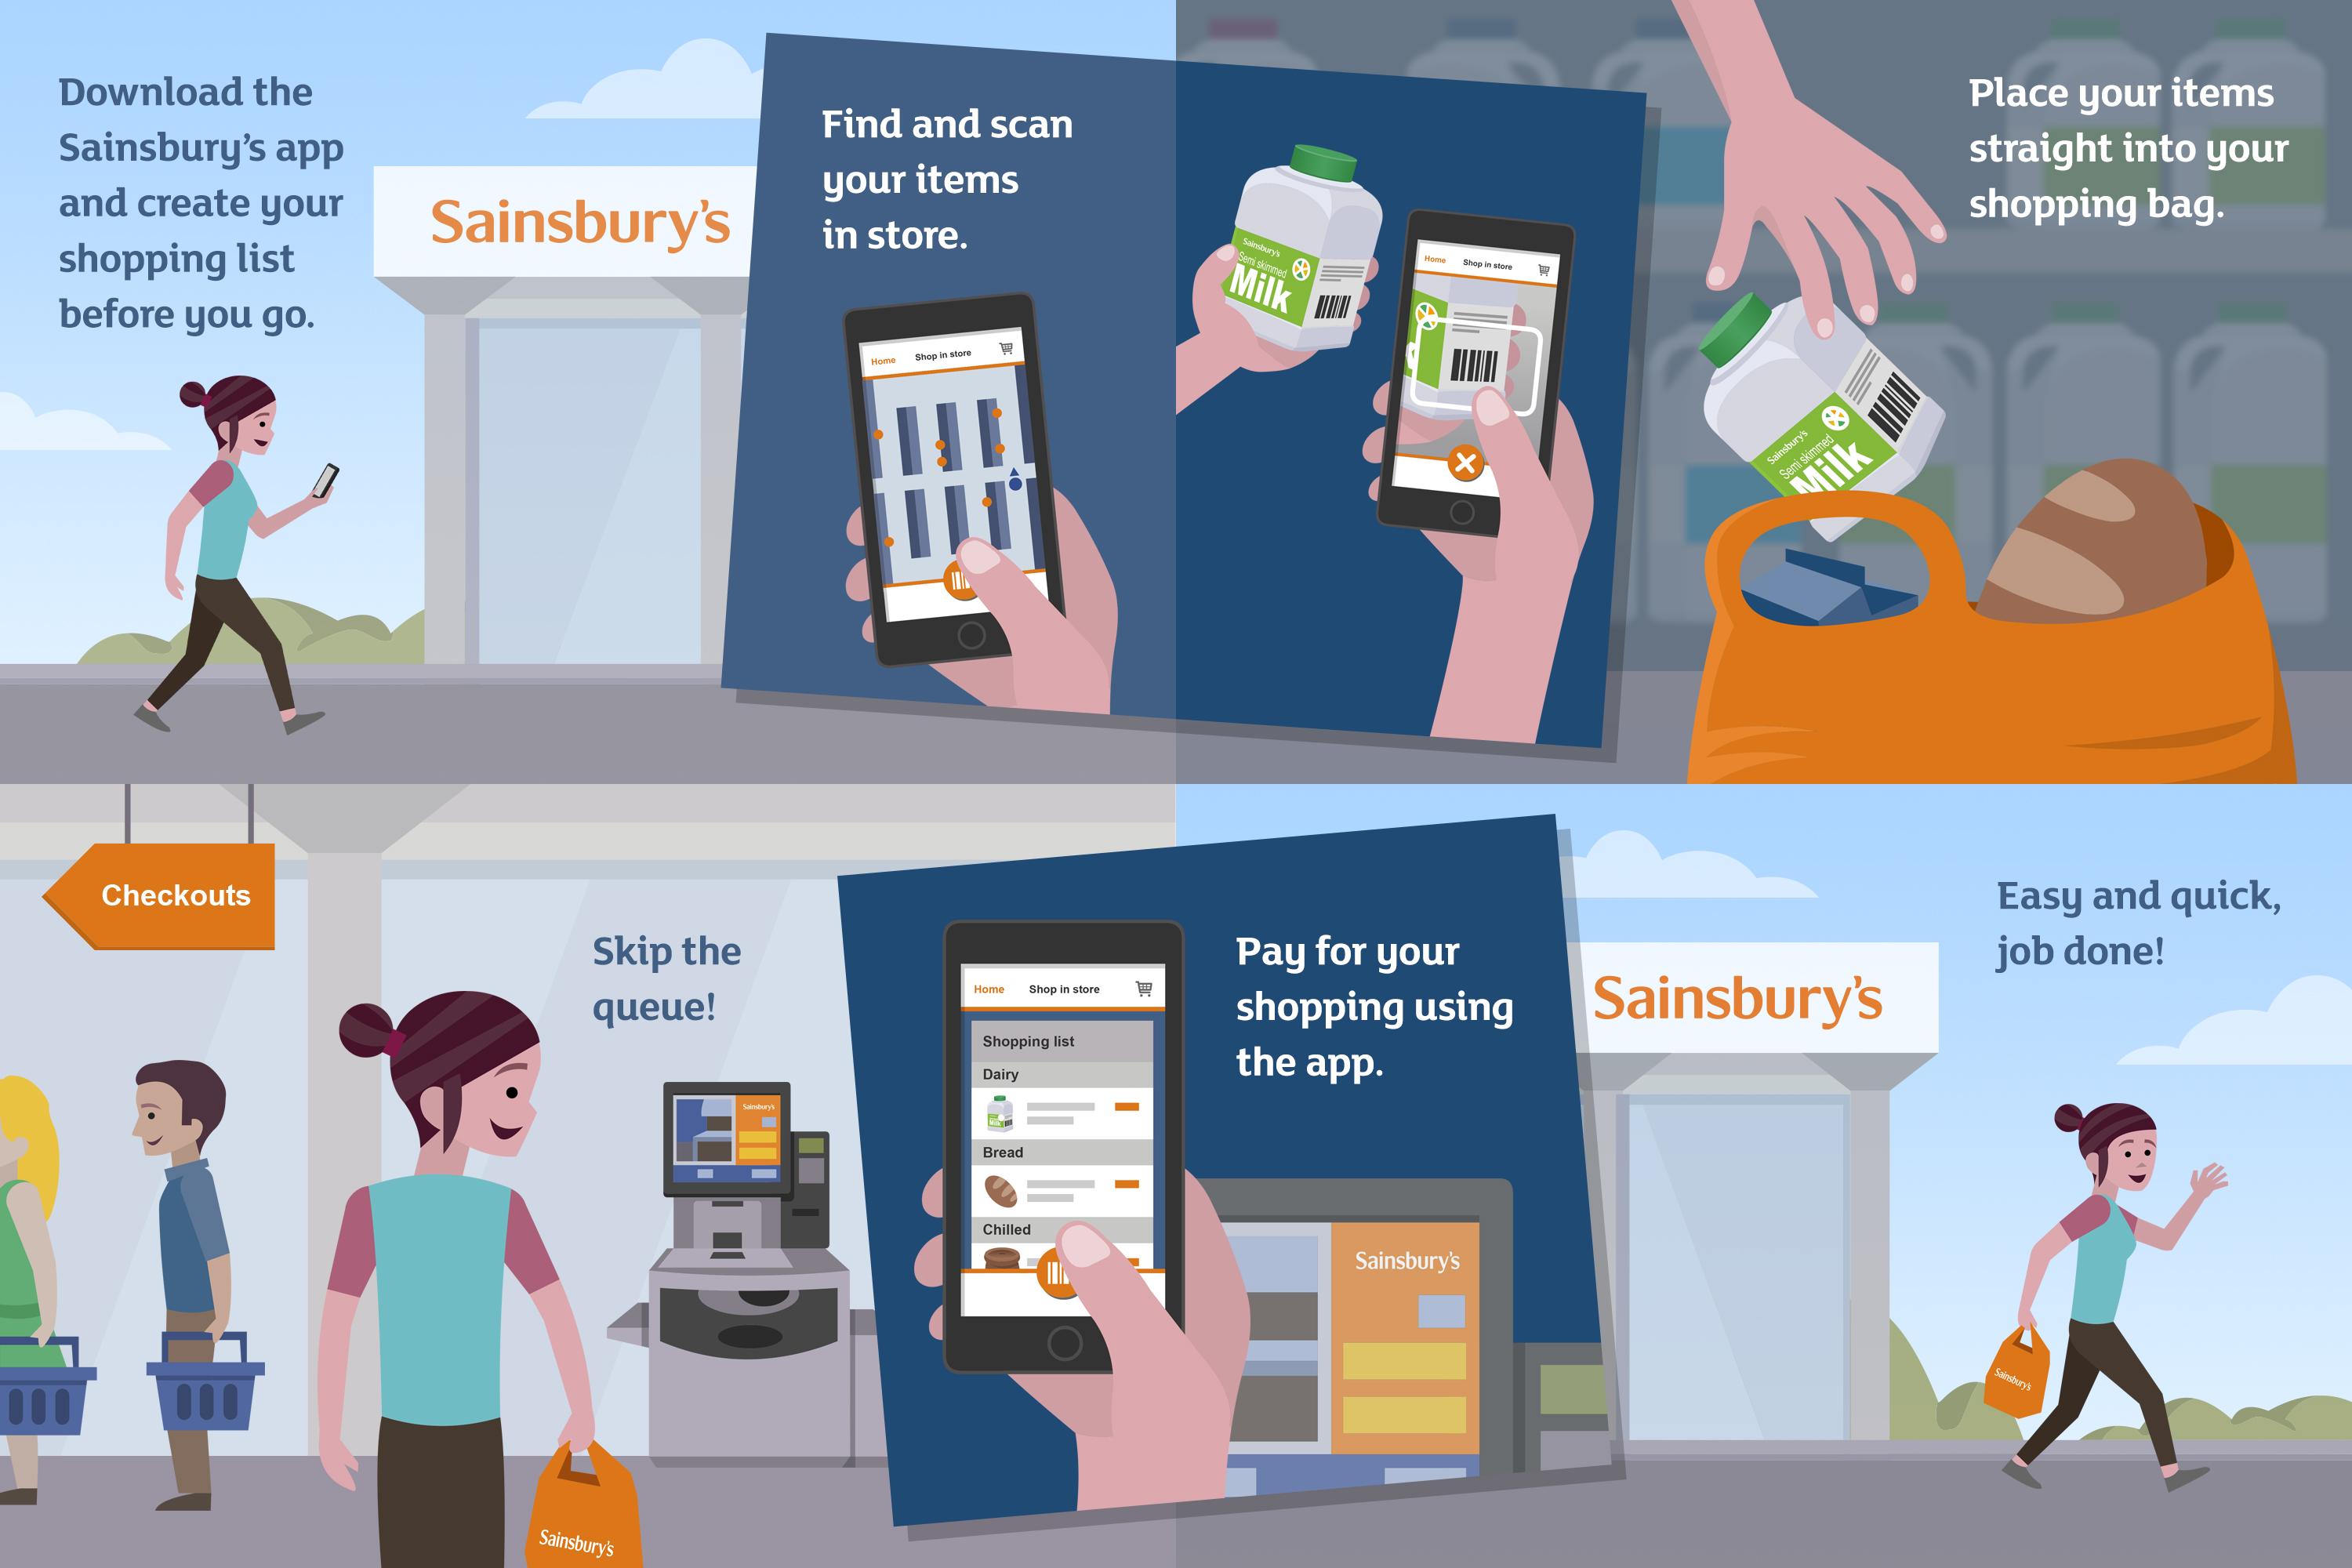 Sainsbury Planning Store Guide and Pay via Mobile App